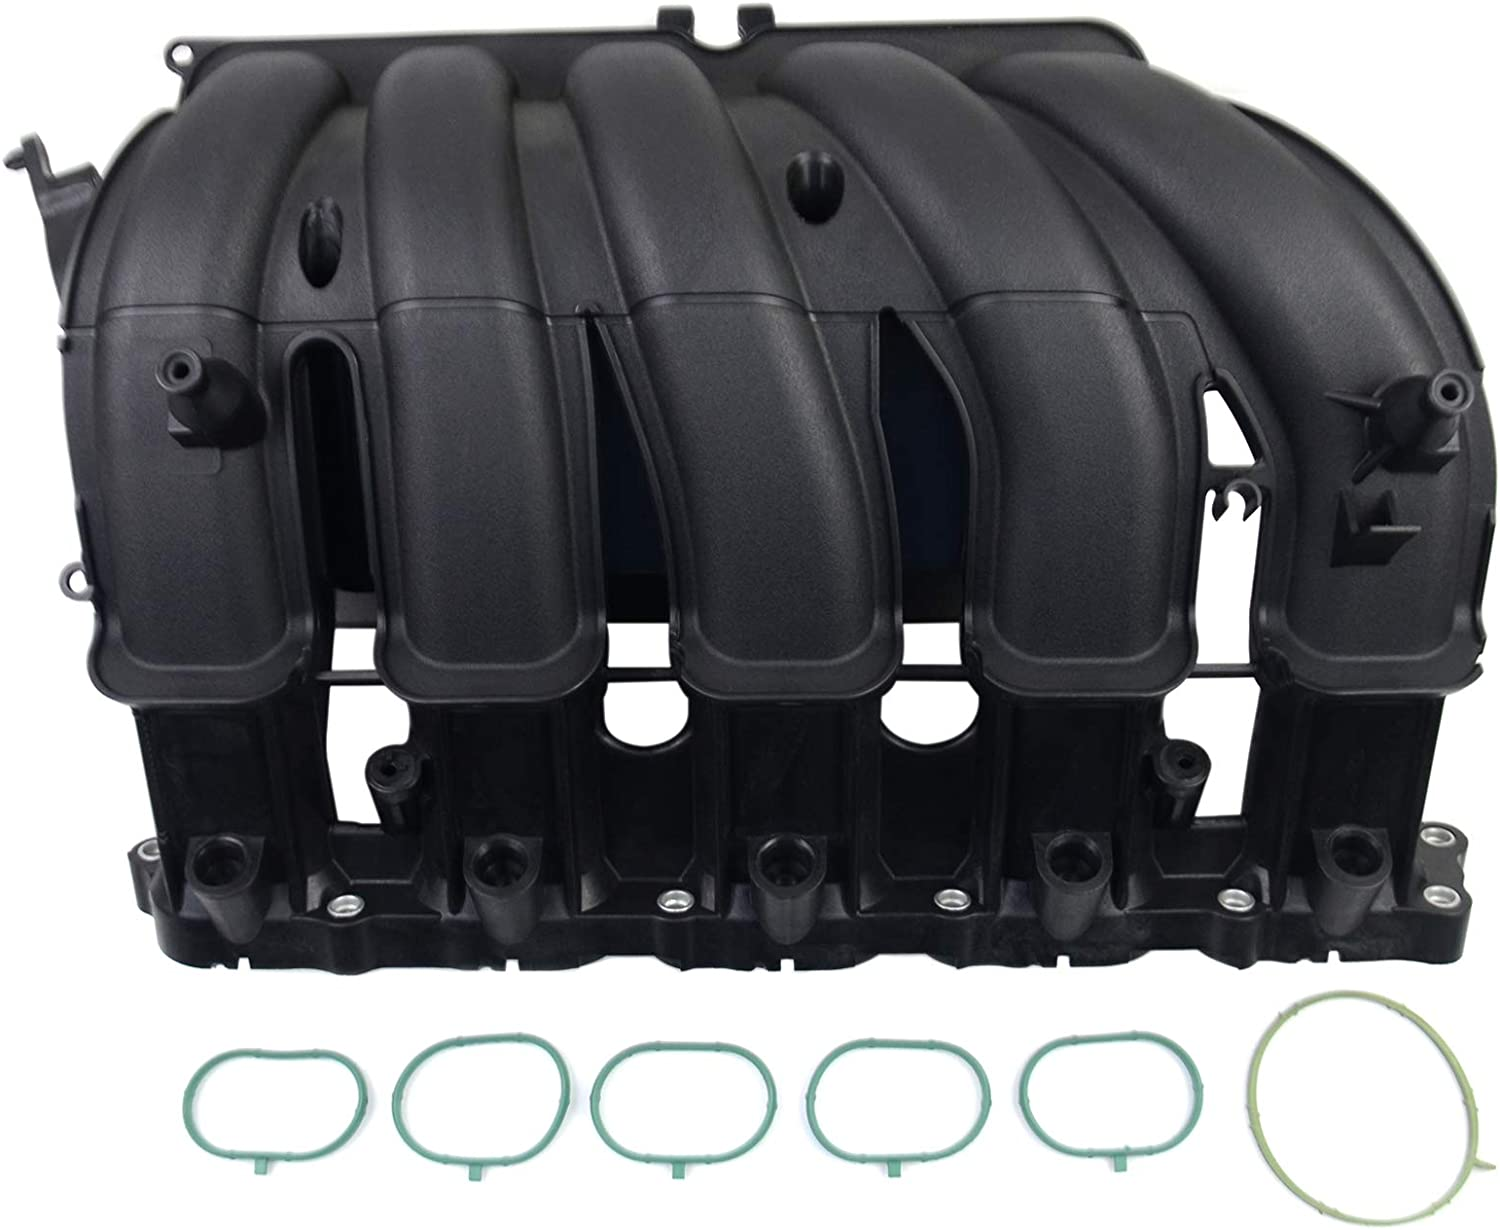 Intake Manifold replacement for 2005-2014 Golf Genuine Beetle P Jetta VW Max 67% OFF